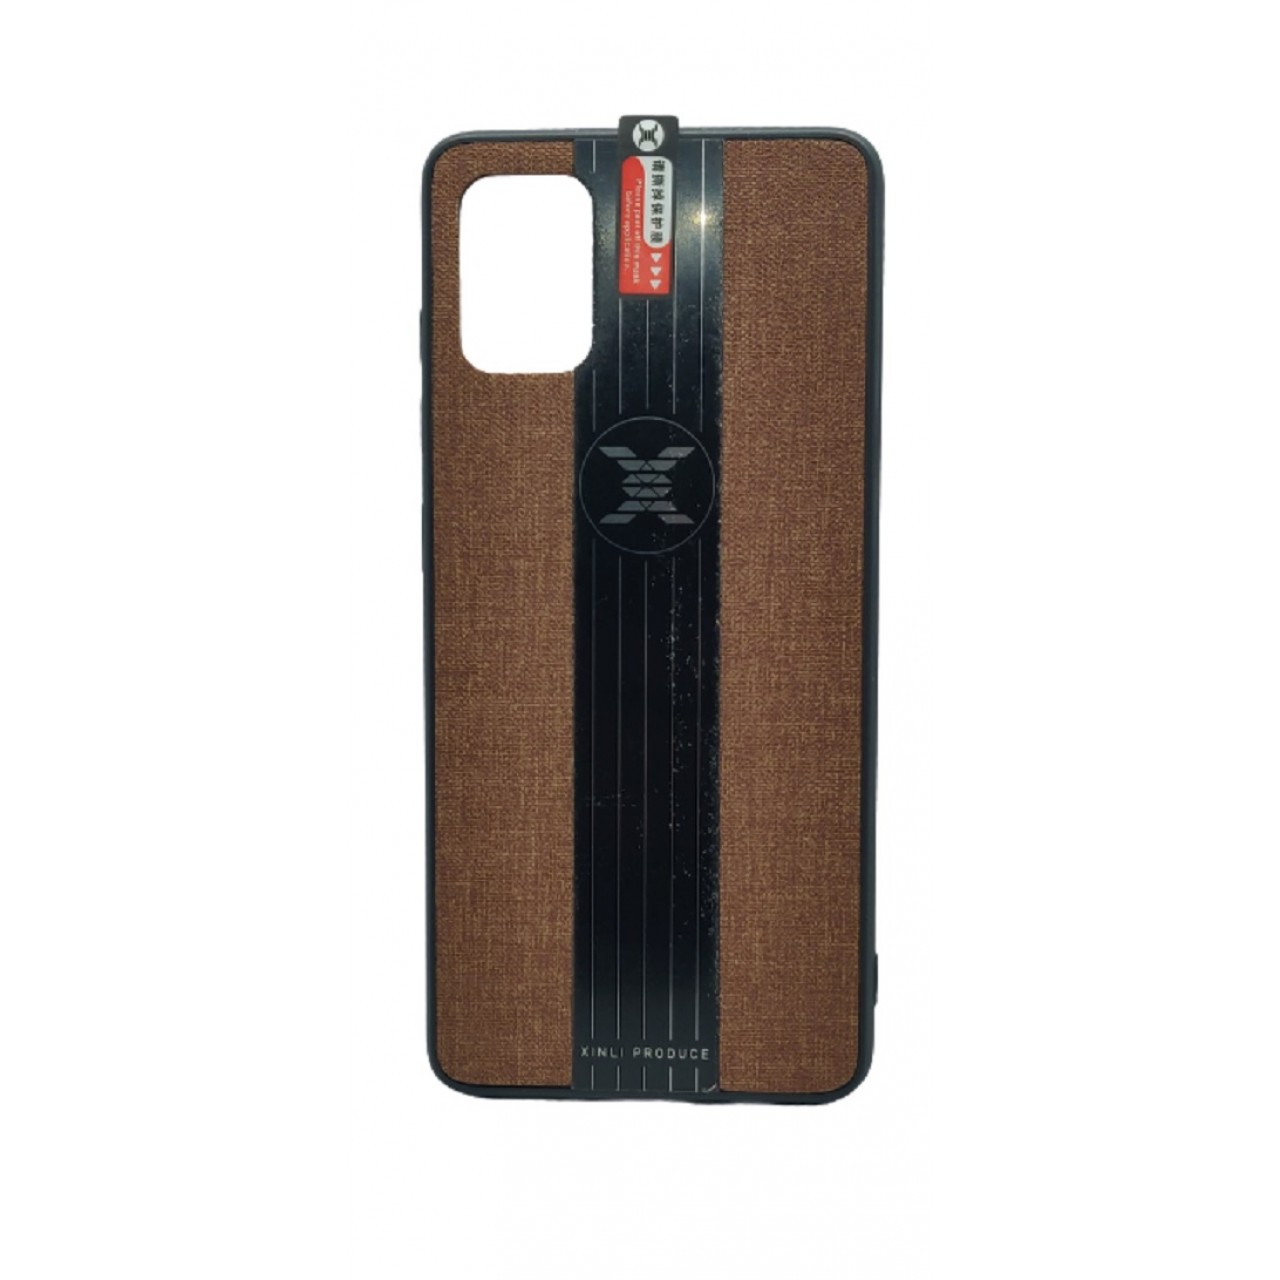 Back Case Cloth Pattern with ring for Samsung A51 Brown - Θήκη προστασίας με δαχτυλίδι στην πλάτη Καφέ - OEM